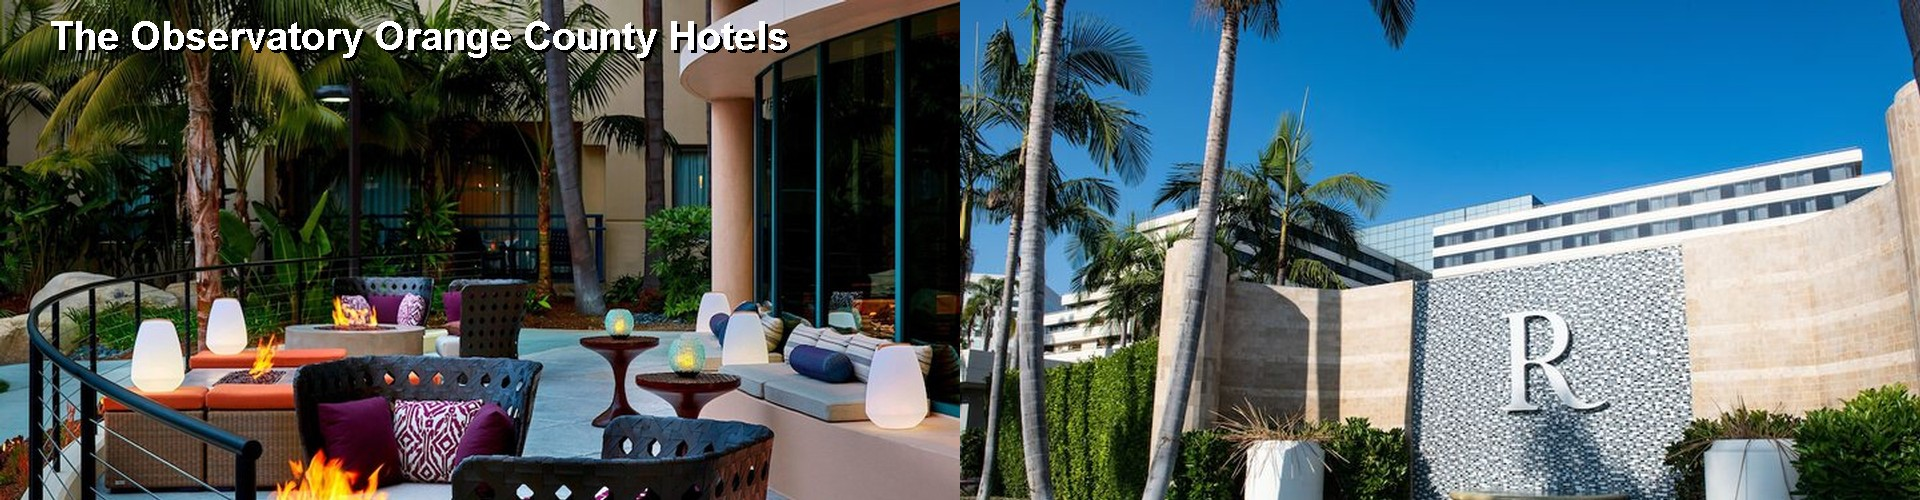 $61+ Hotels Near The Observatory Orange County in Santa Ana (CA)